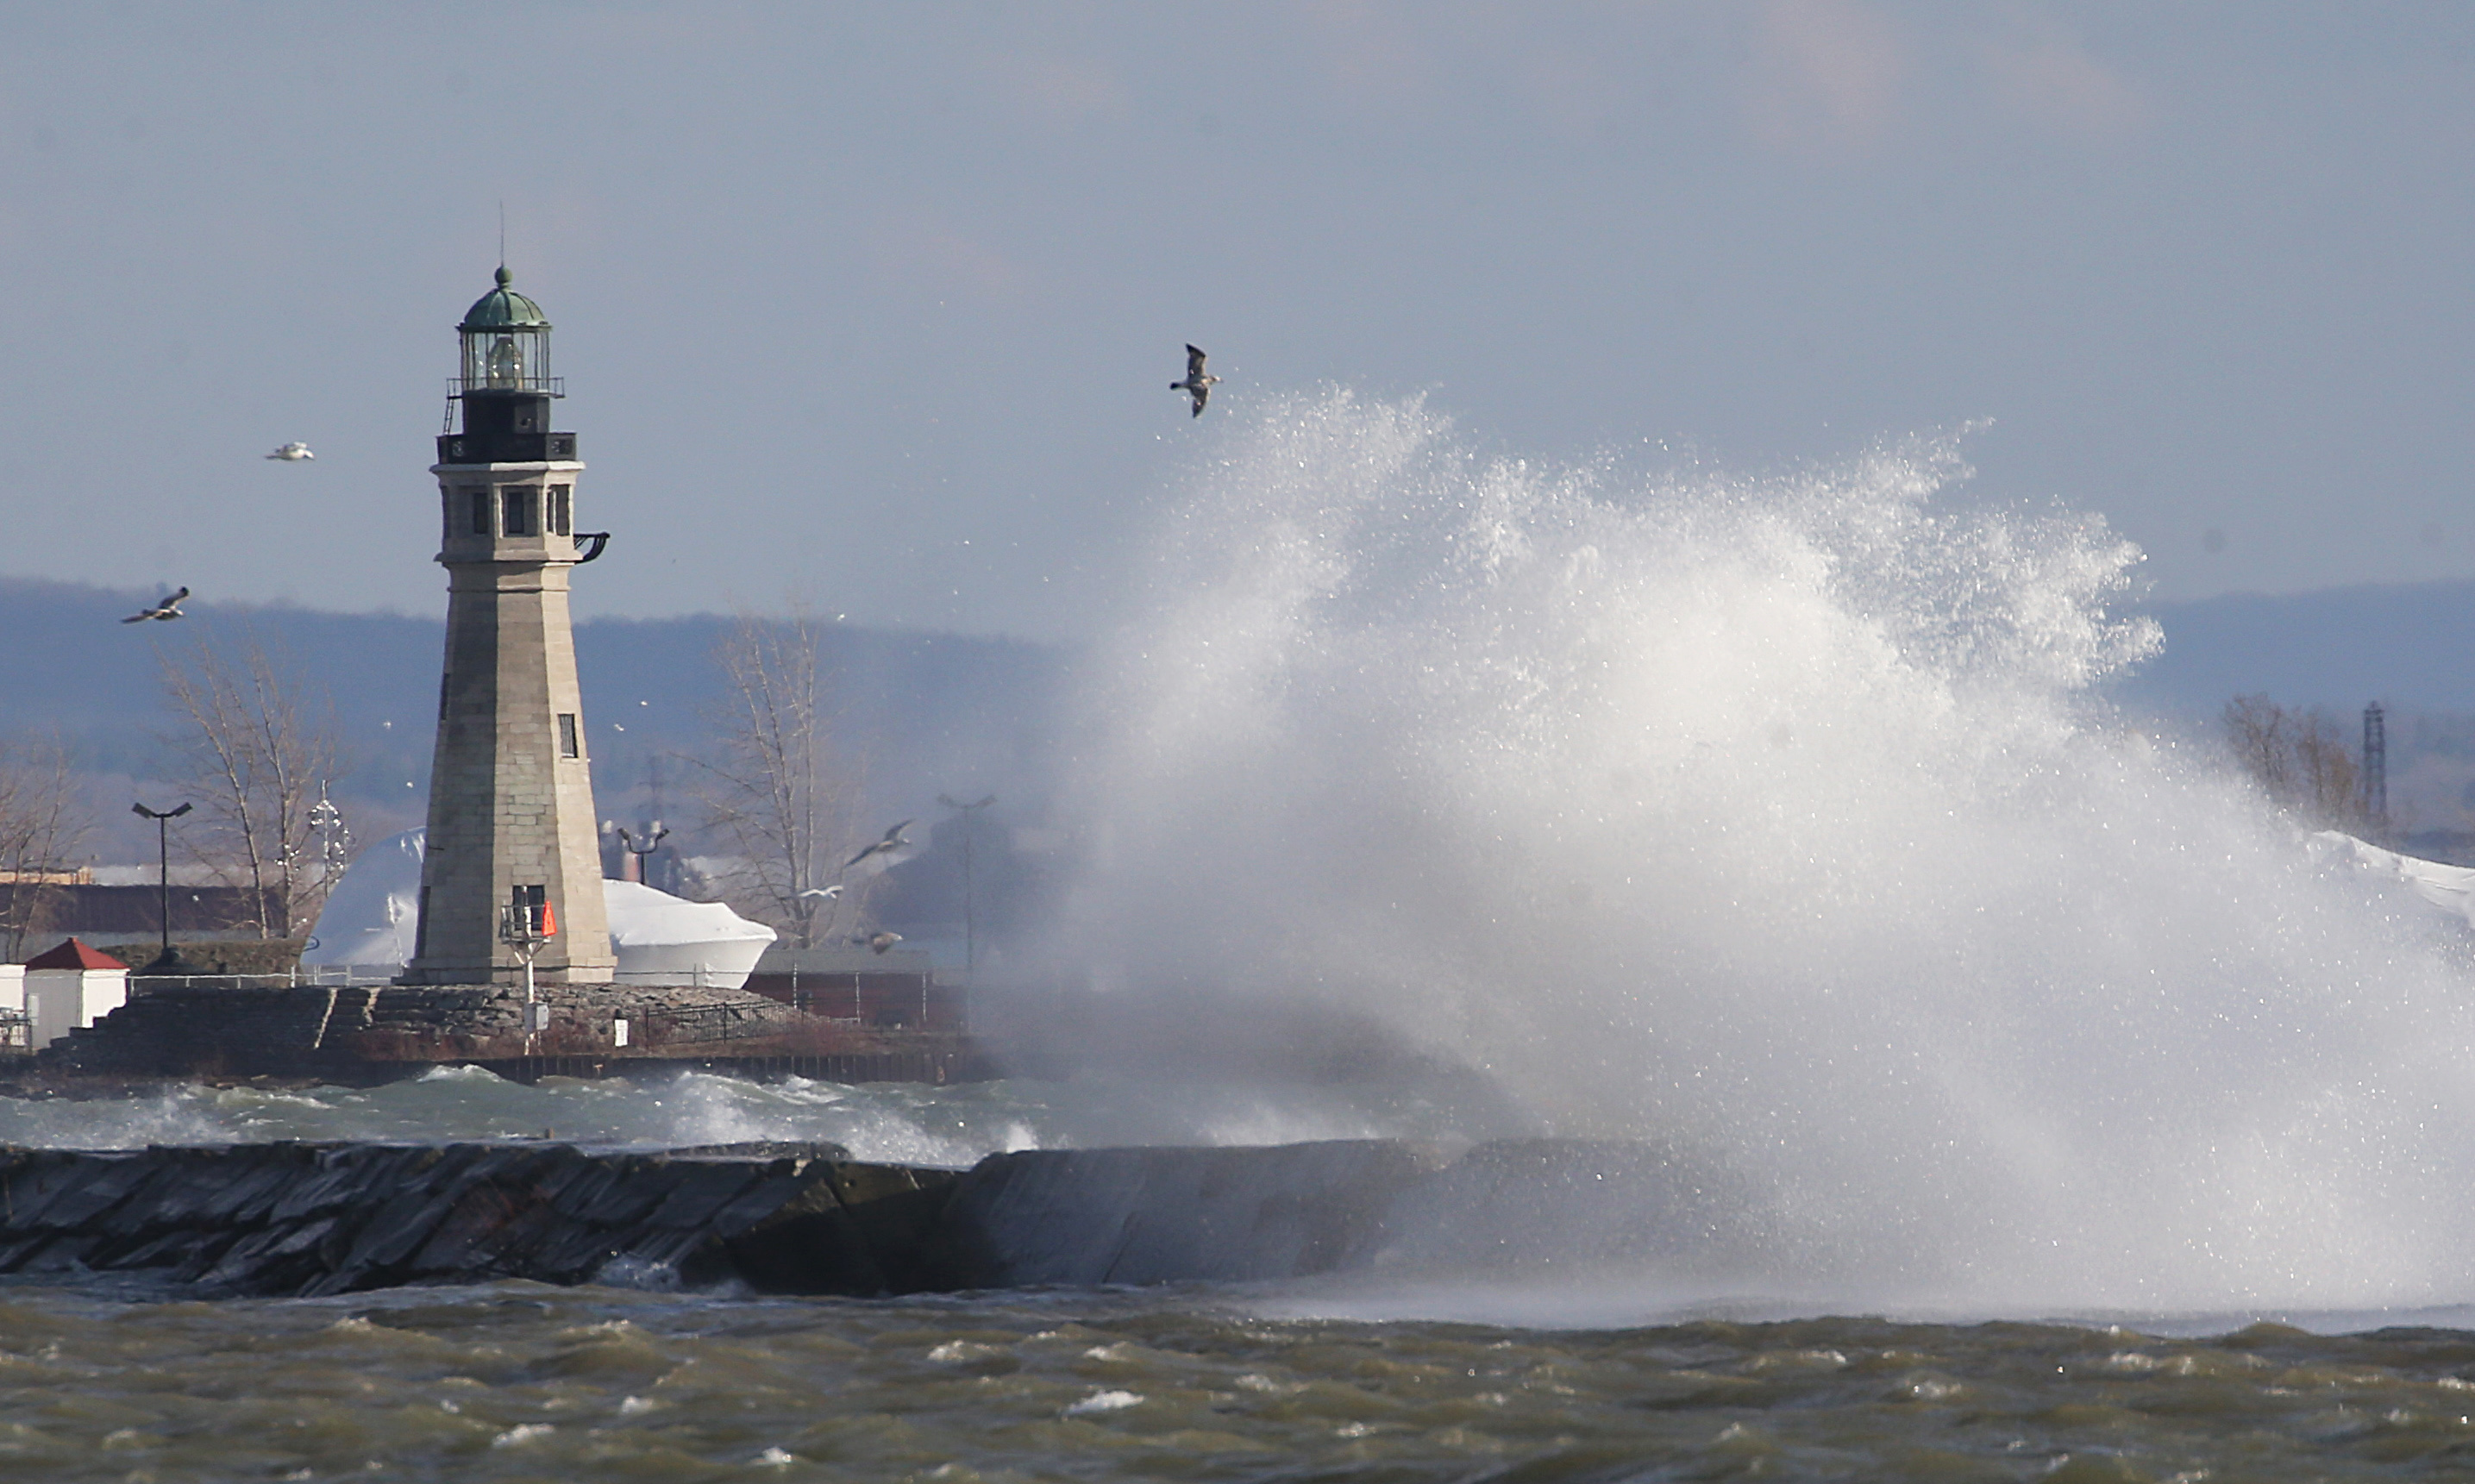 High winds produced walls of water as they crashed into the Outer Harbor breakwall on Lake Erie in Buffalo last month. The scene could be replicated later today, forecasters warn as wind gusts upward of 60 mph are expected. (Sharon Cantillon/Buffalo News)